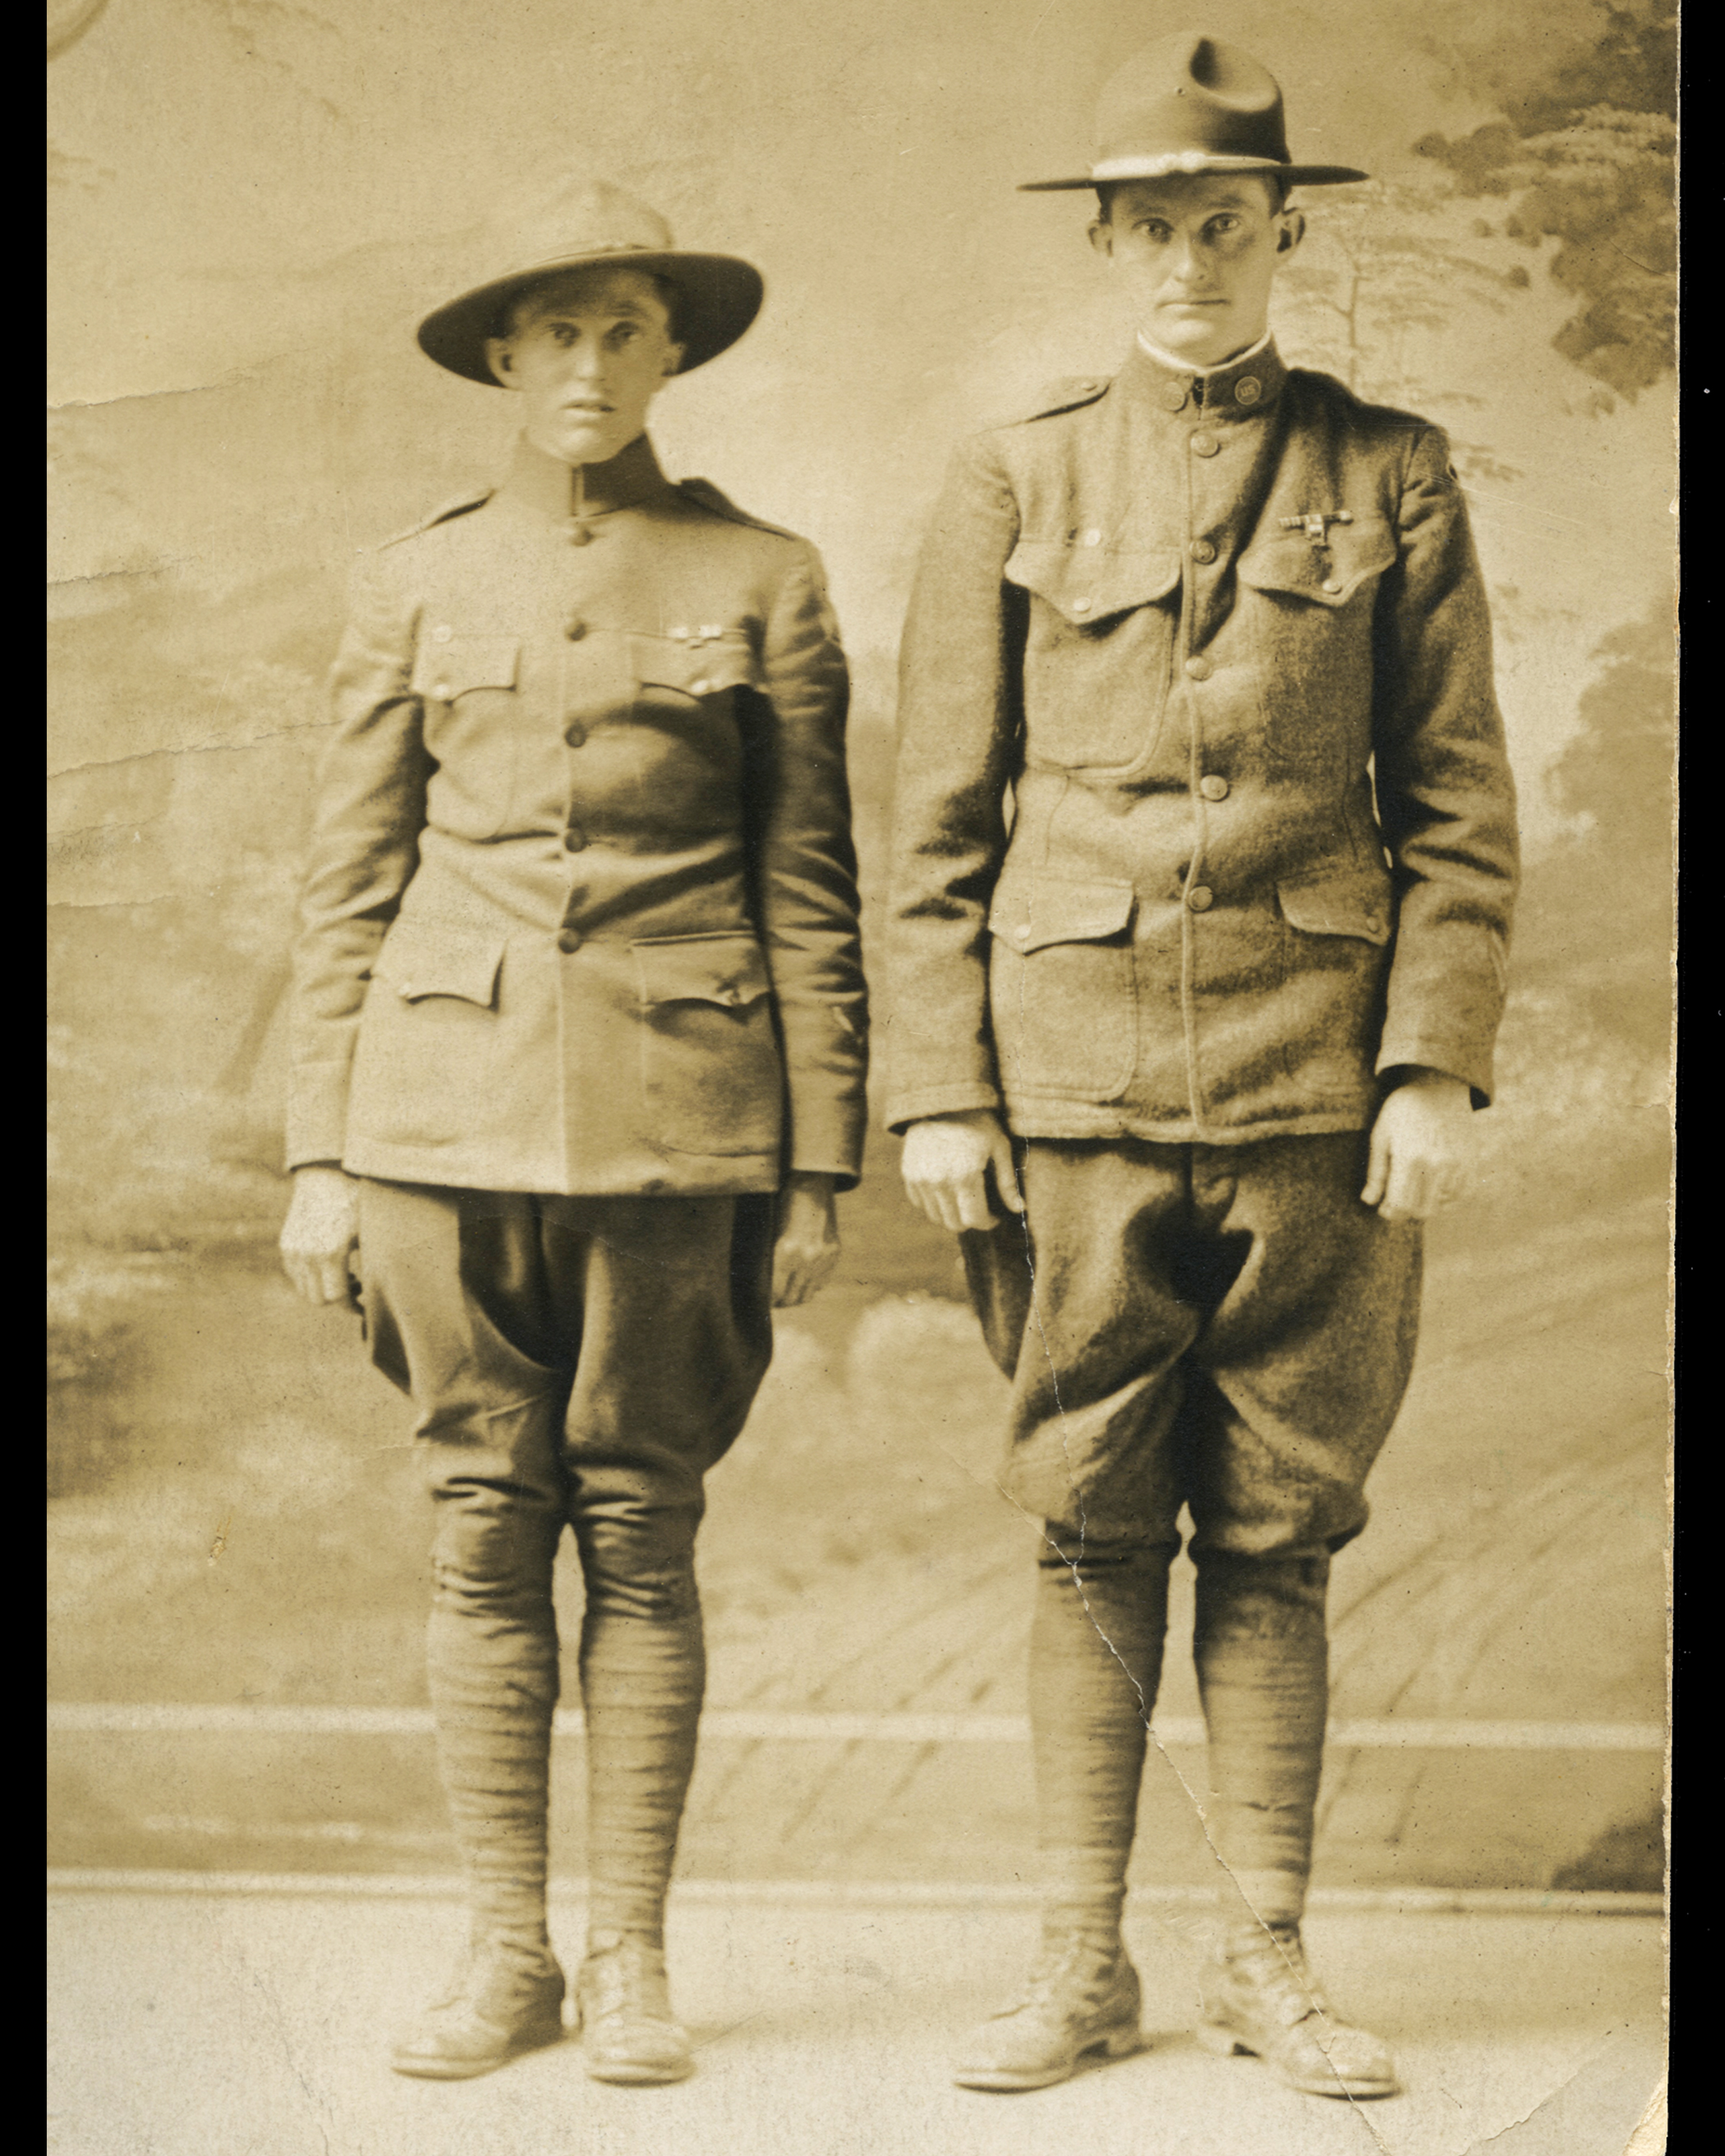 Brothers H. Eads (left) and A. Eads (right)